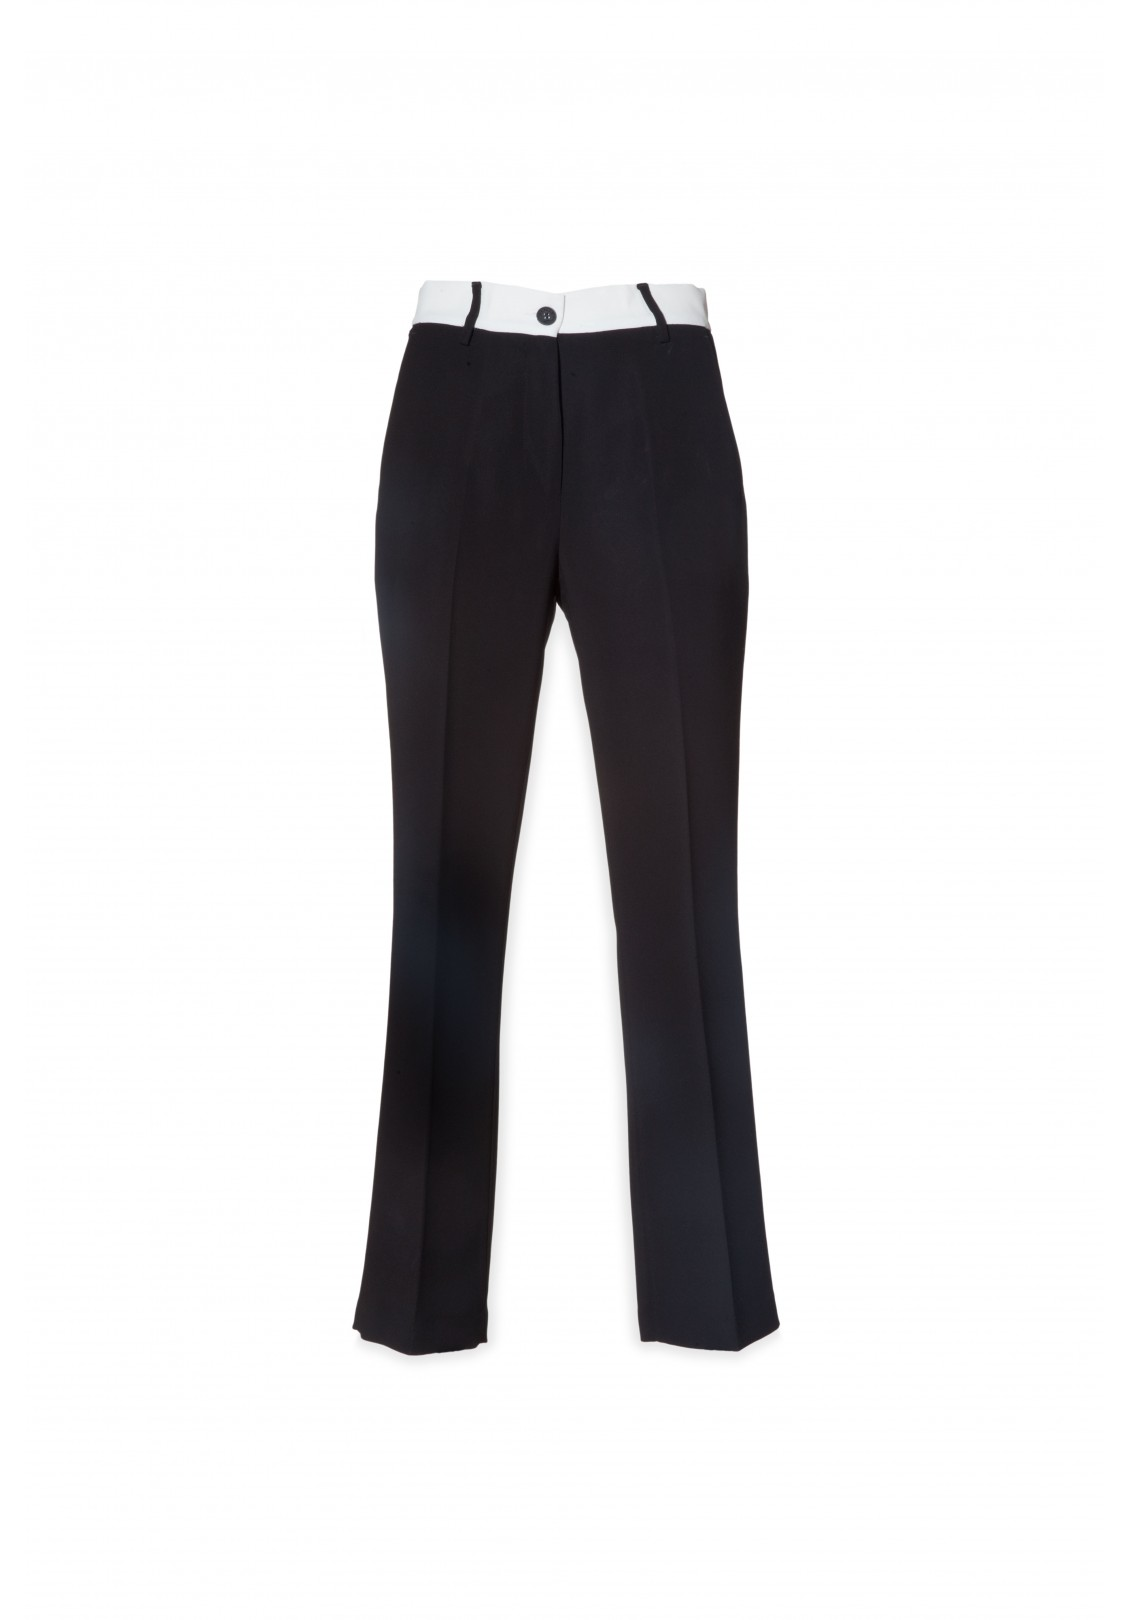 TROUSER - GBD4841 - GAELLE PARIS